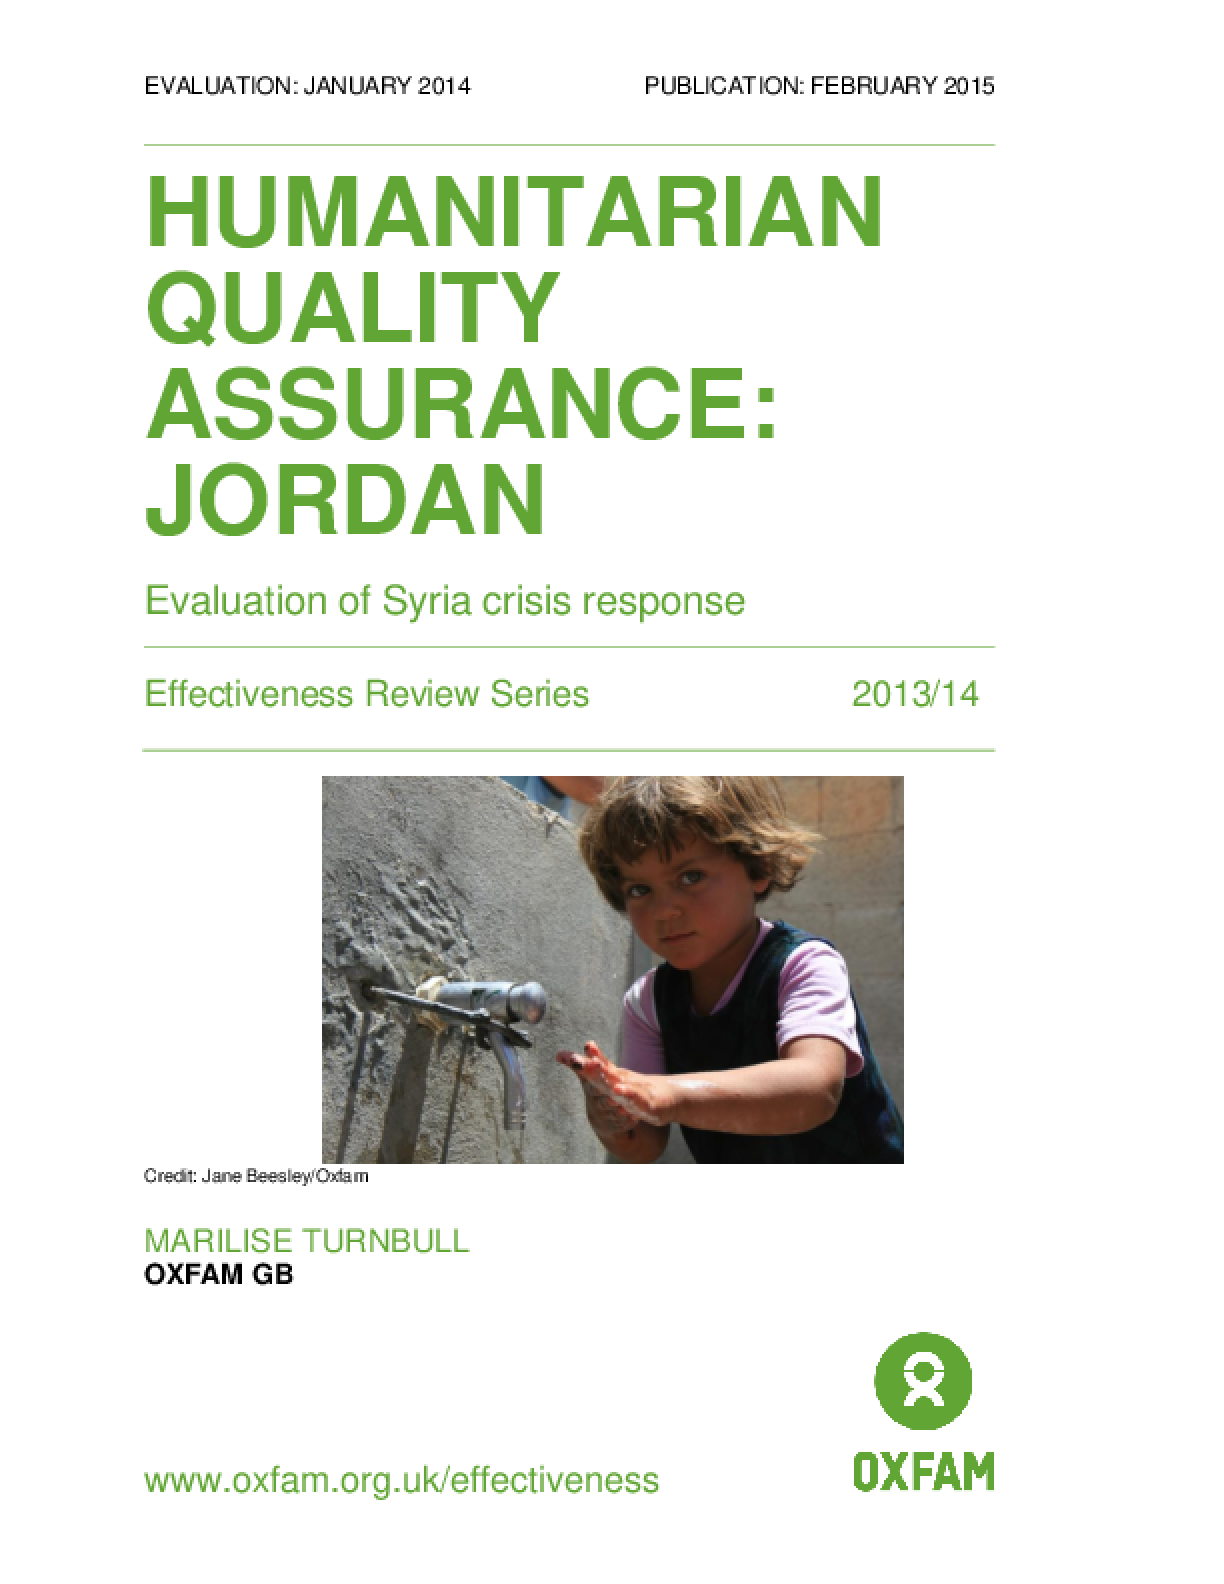 Humanitarian Quality Assurance - Jordan: Evaluation of Syria crisis response